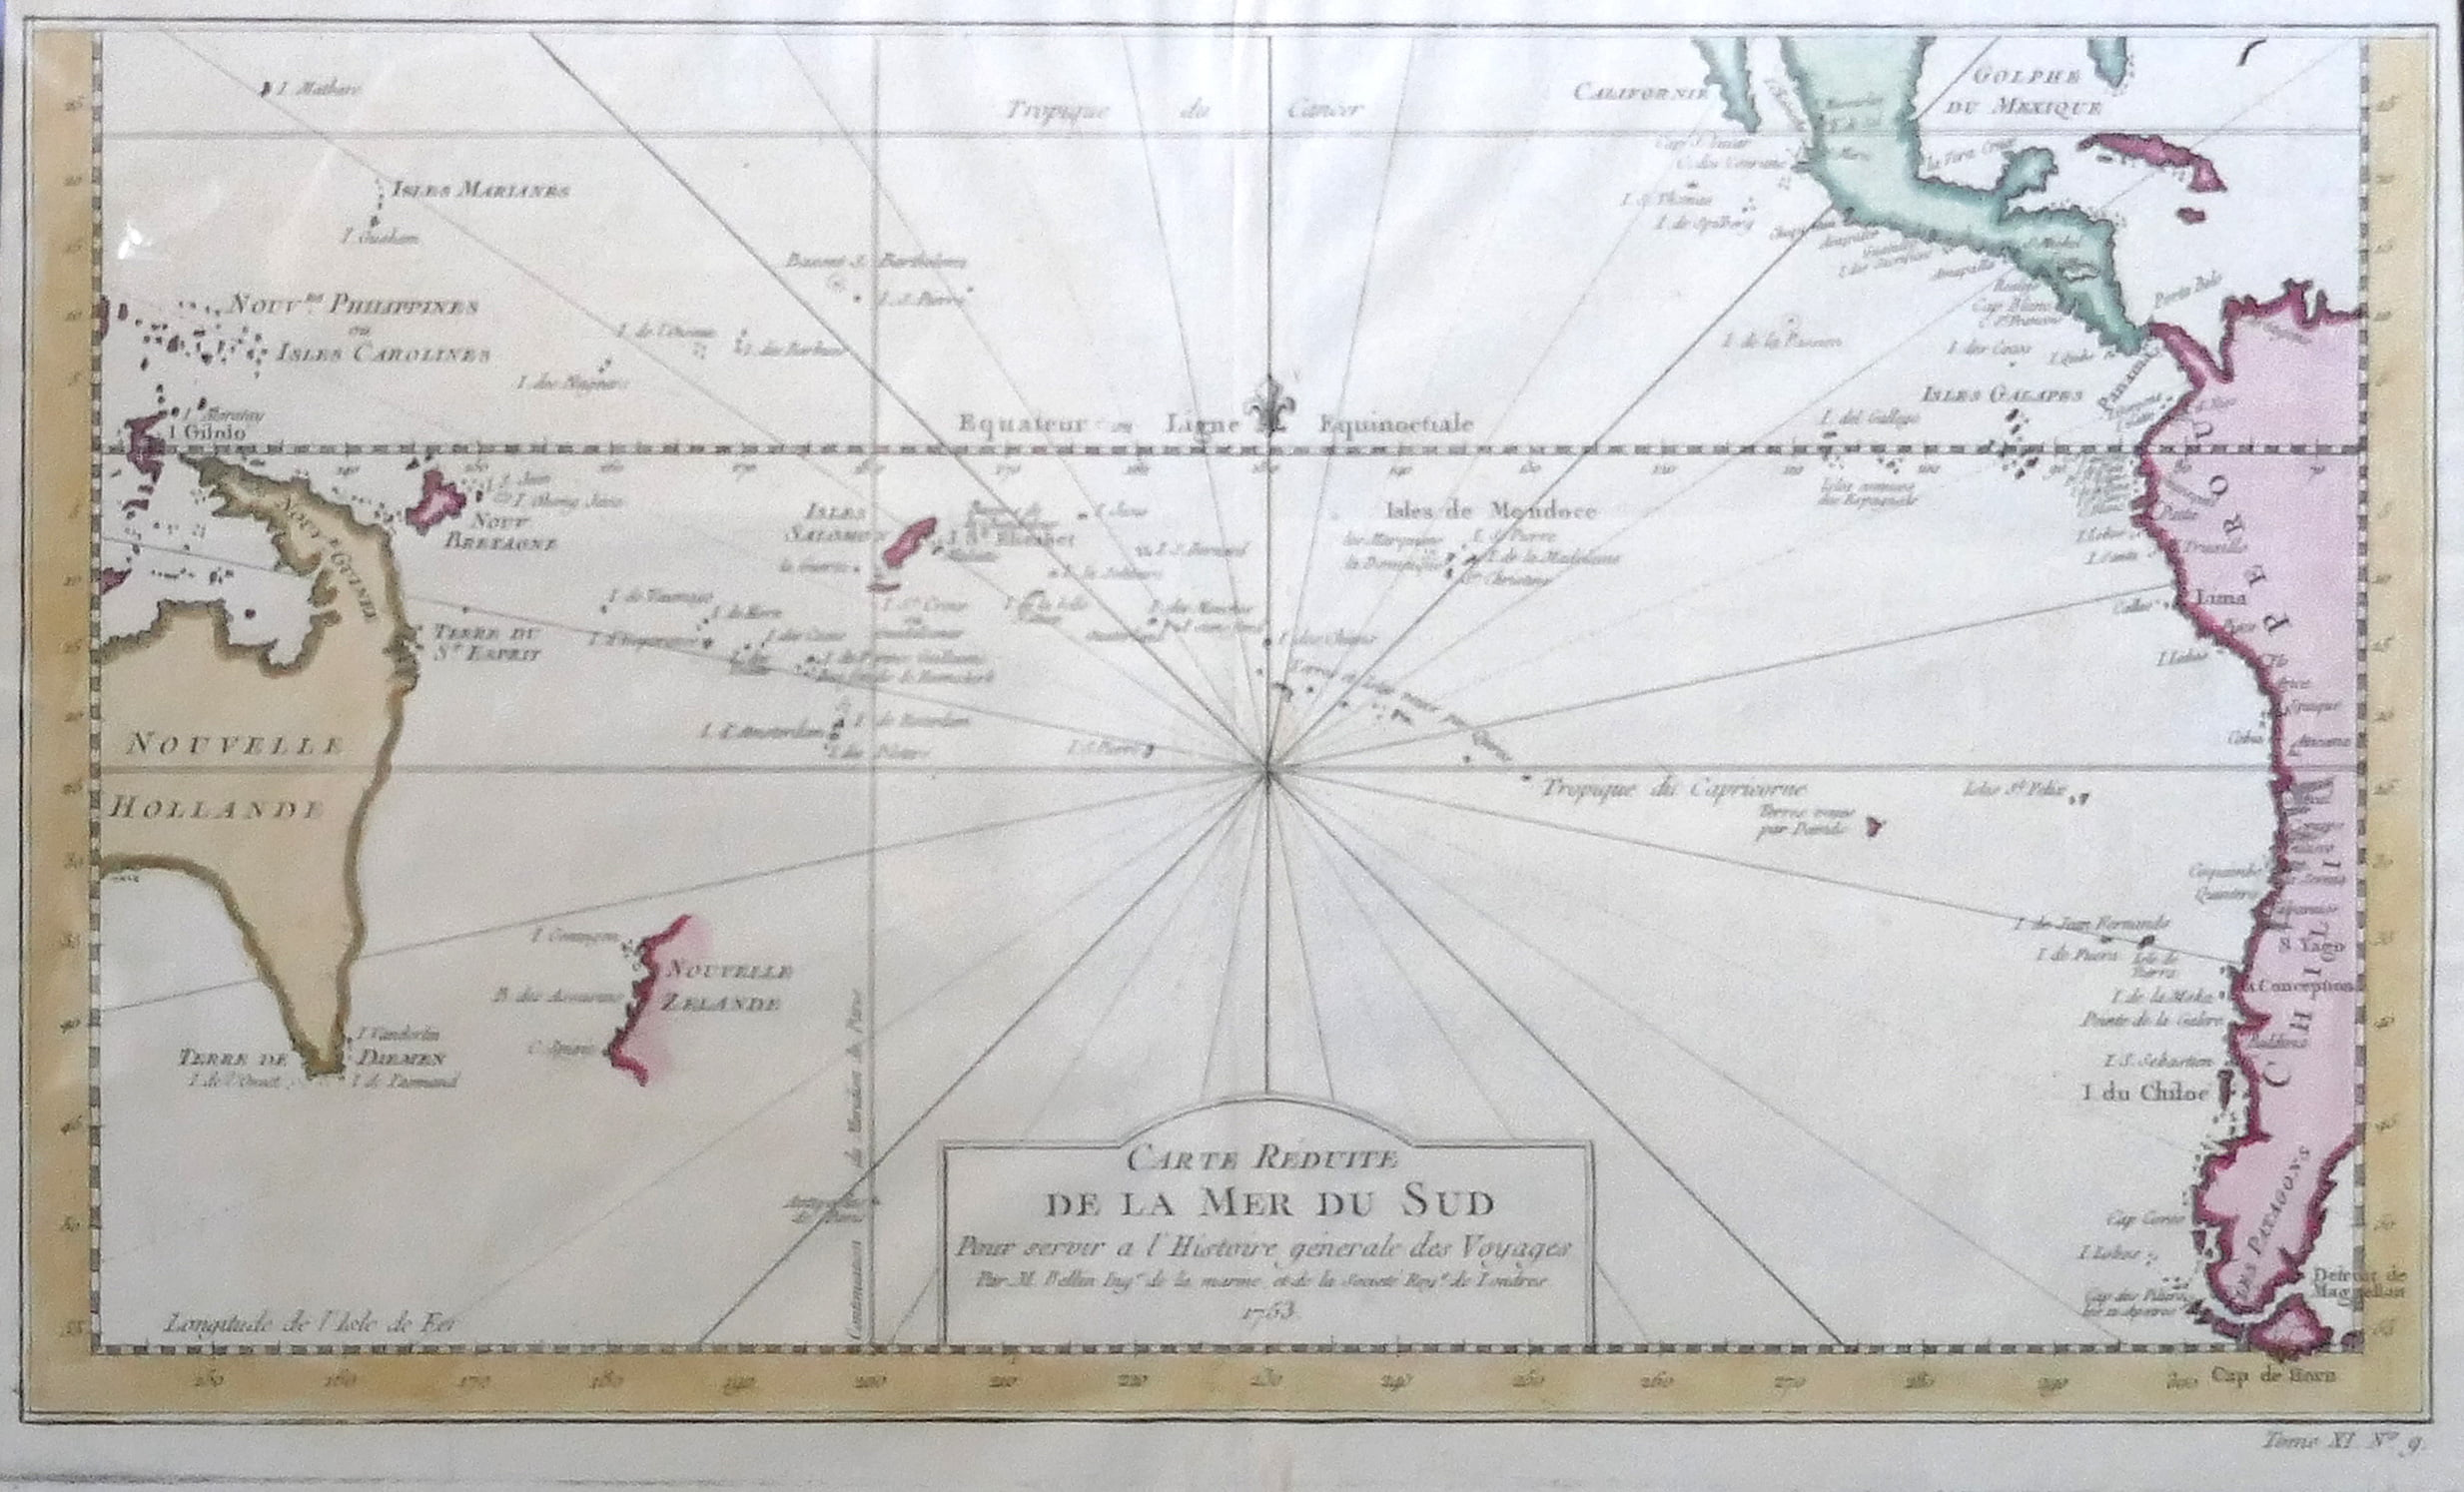 35. 1754 Map of the South Pacific